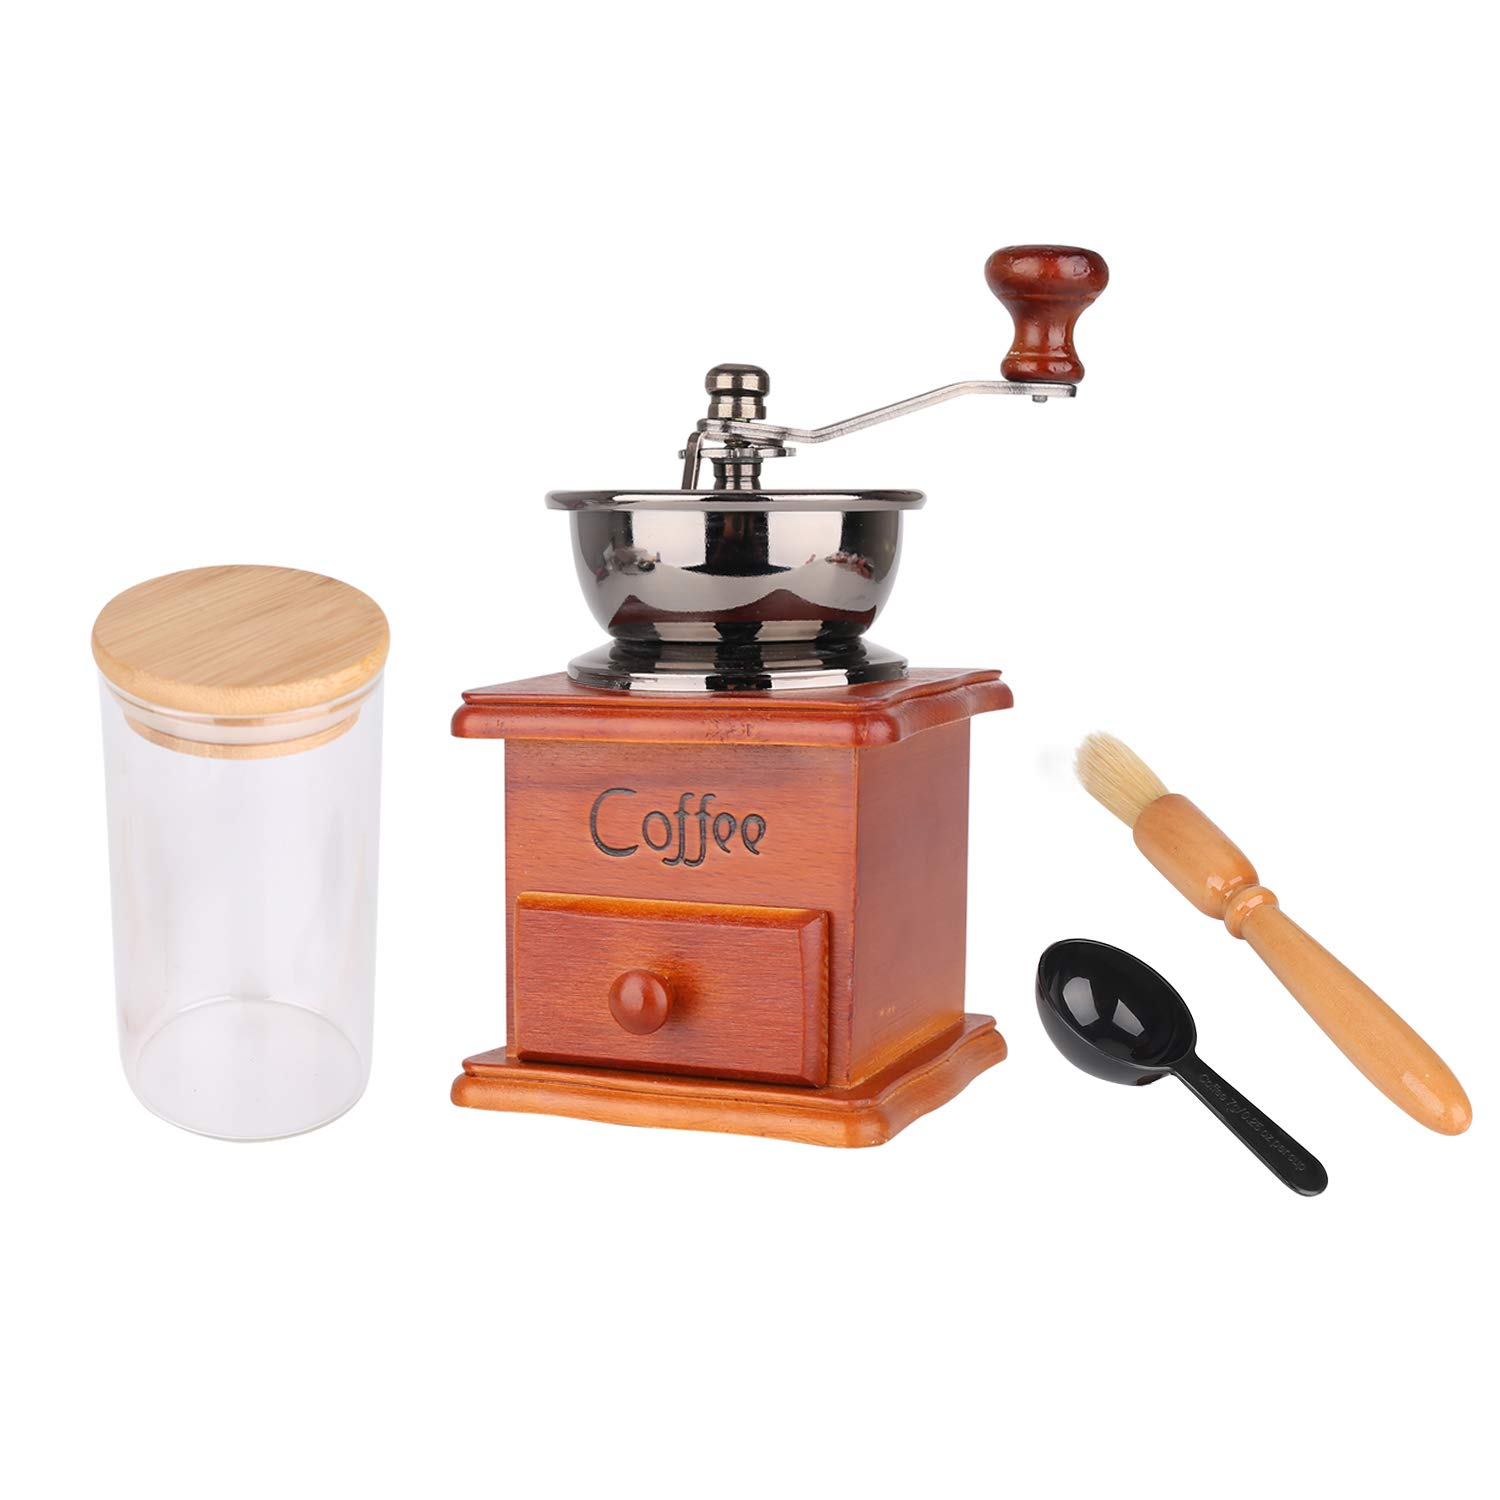 Vintage Wooden Manual Coffee Grinder with Ceramic Burr,HT Hand Crank Coffee Mill with Glass Jars ,Brush,Spoon